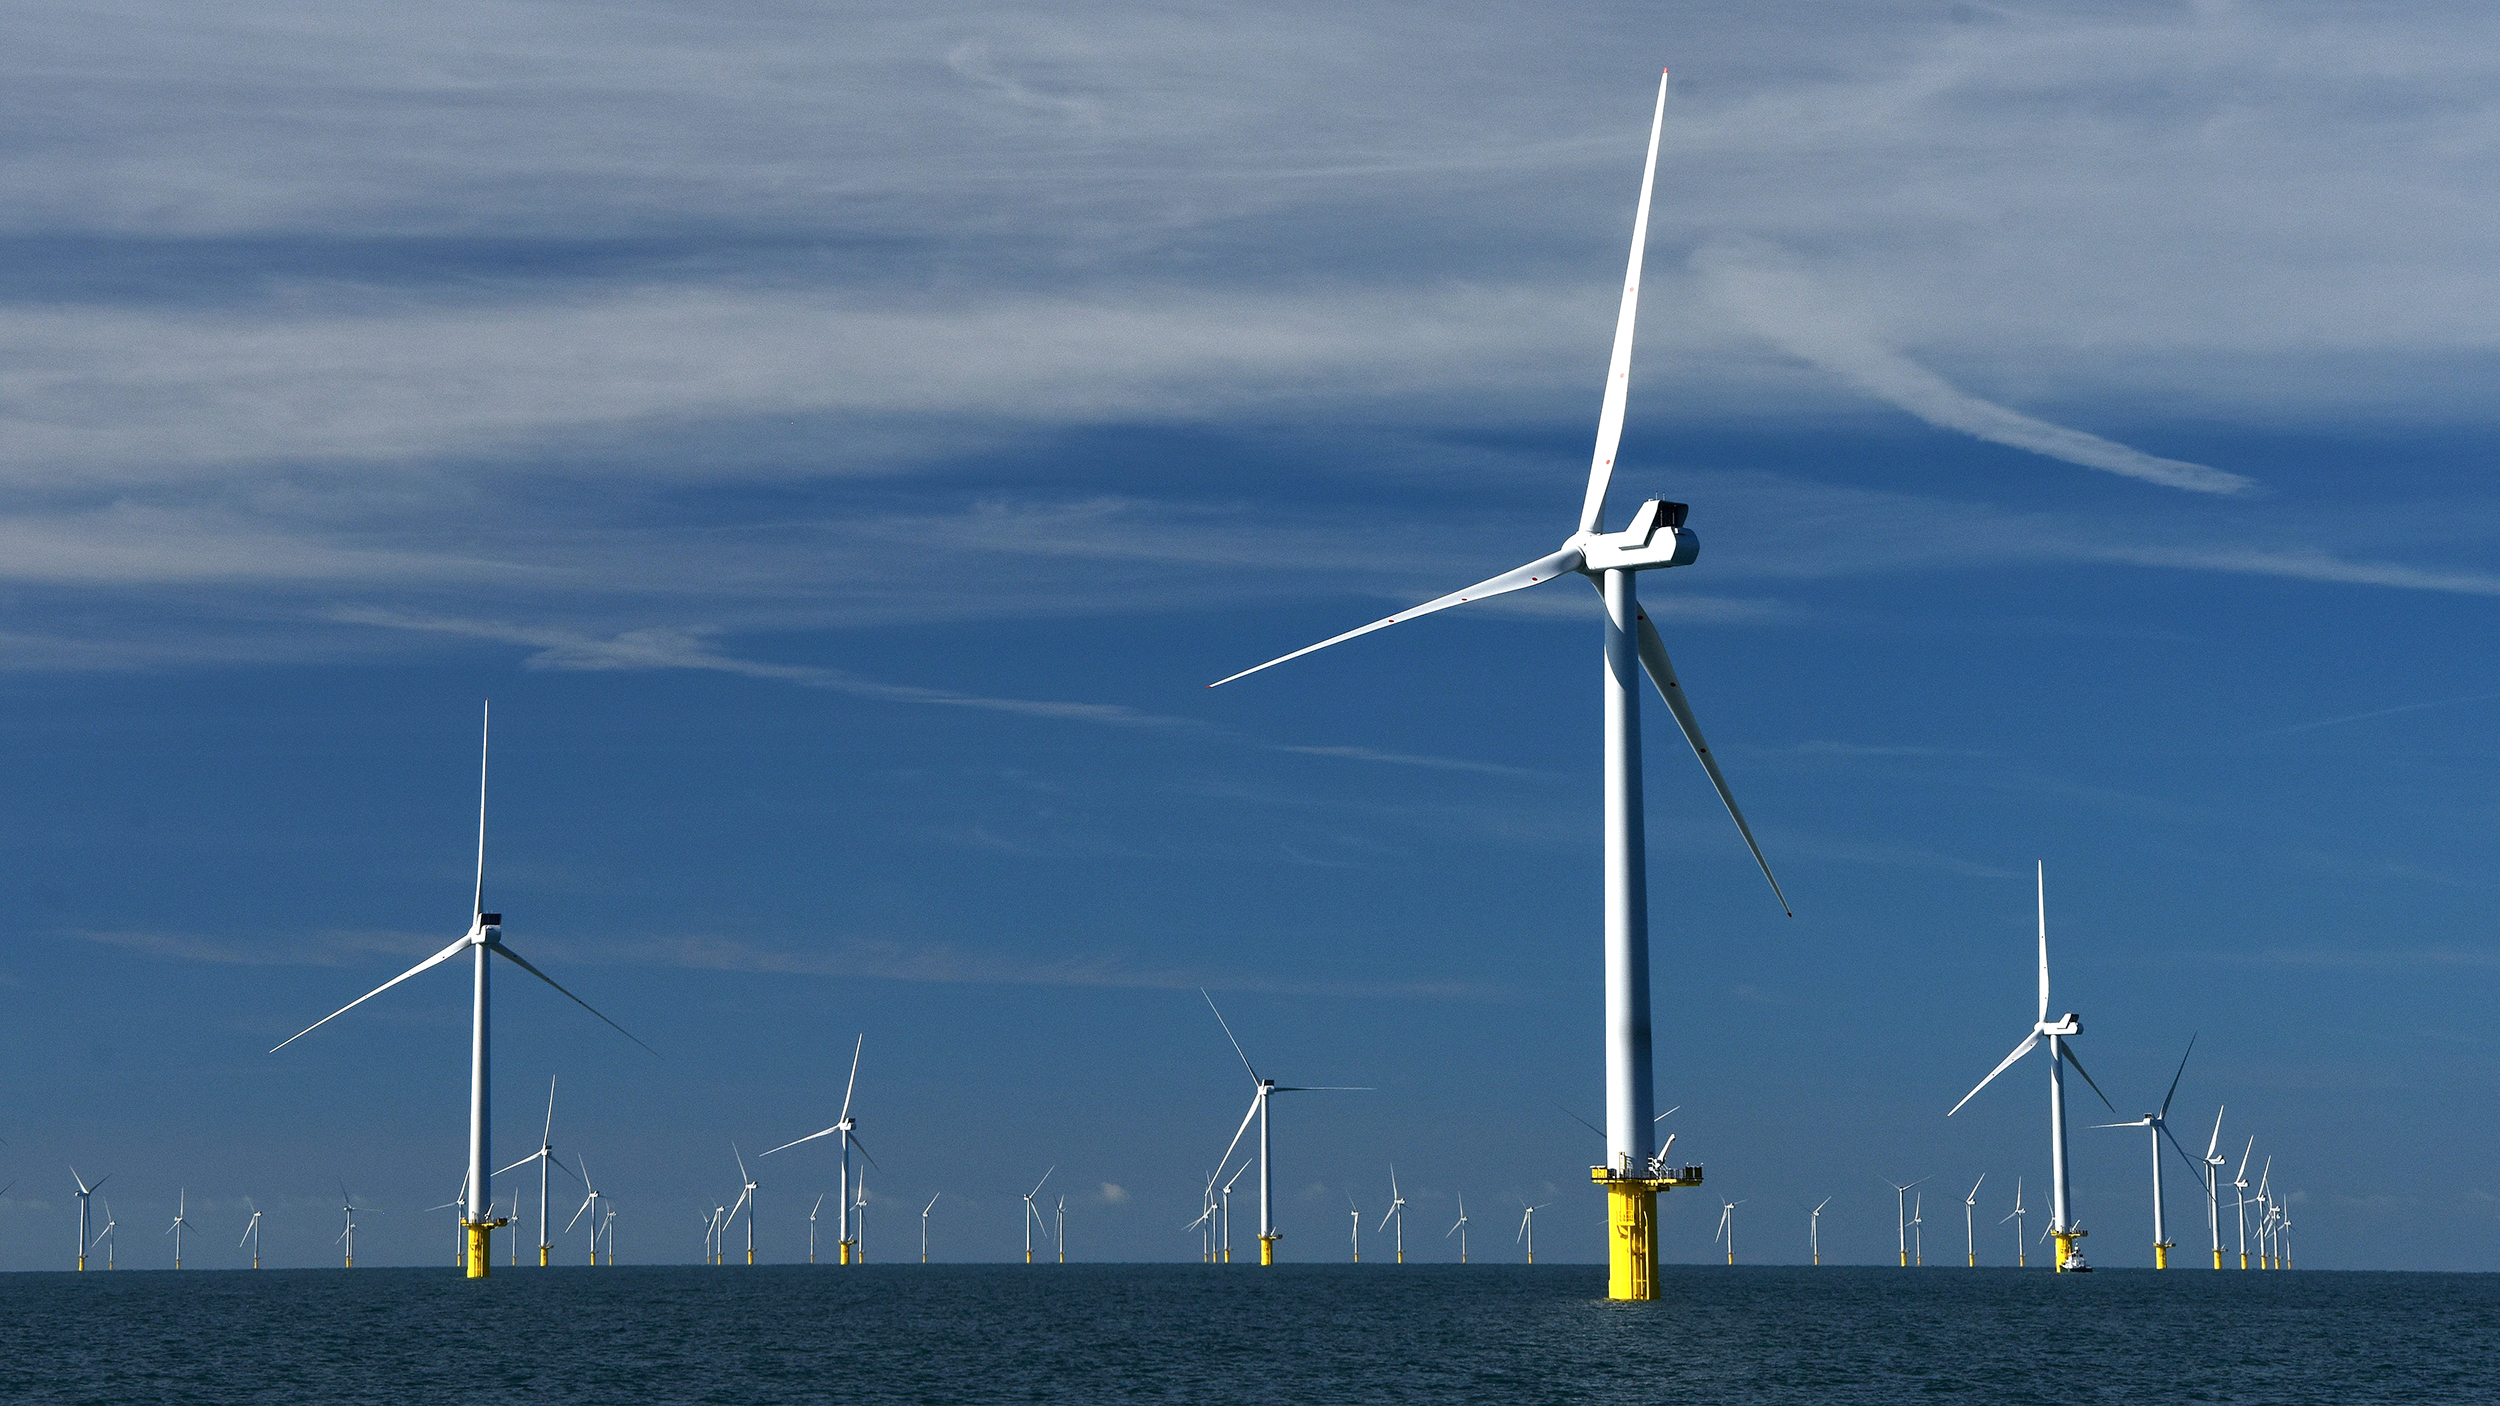 A single floating wind farm could power the entire planet